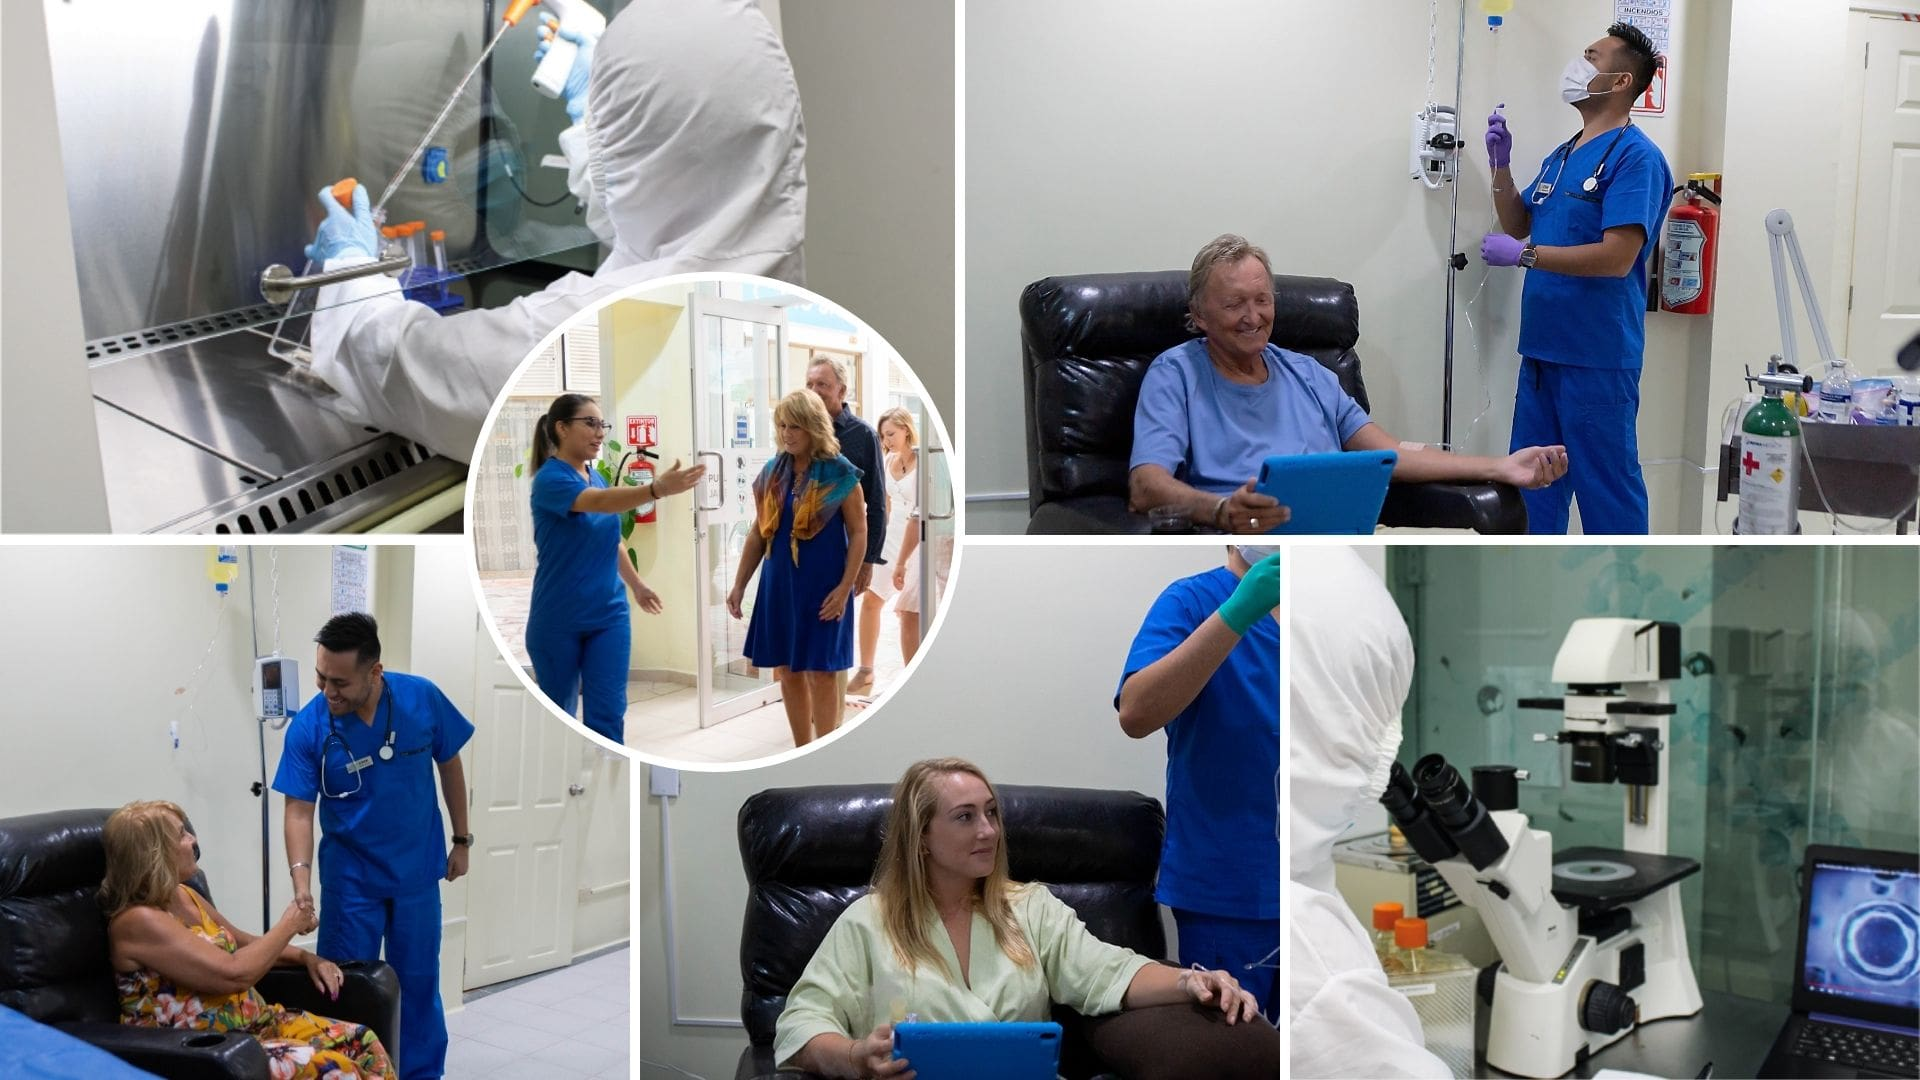 Collage of our medical and clinical staff at our practice caring for patients